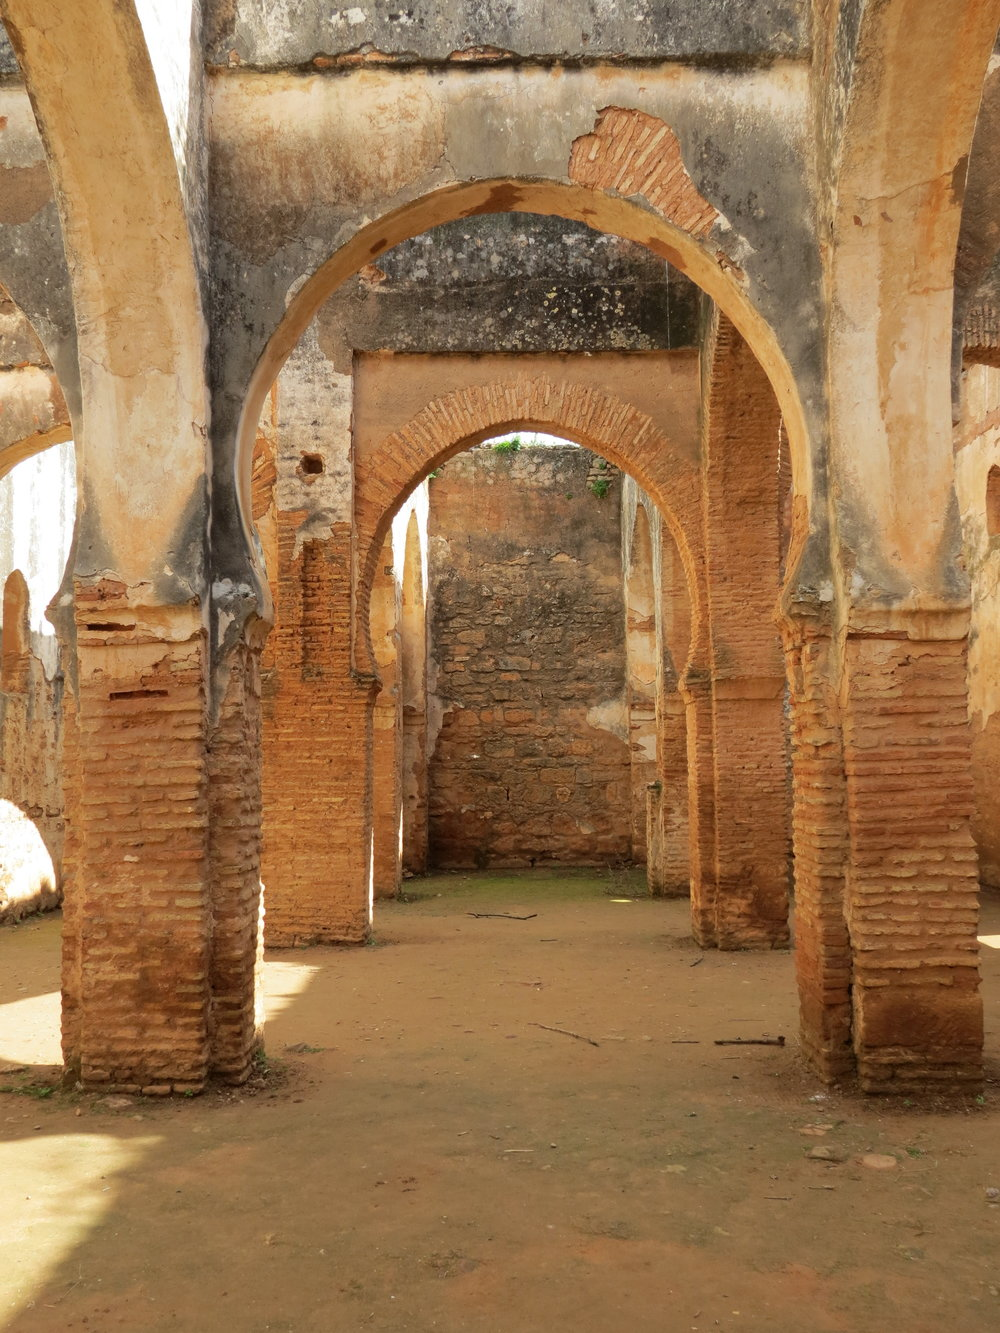 Things to do in Rabat, Morocco: visit the Roman ruins at Chellah.